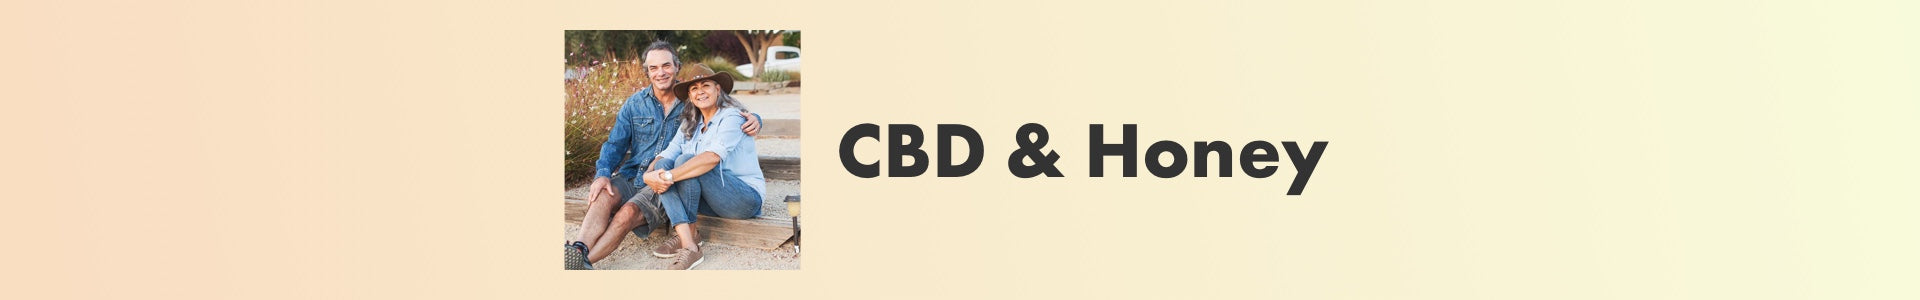 CBD & Honey